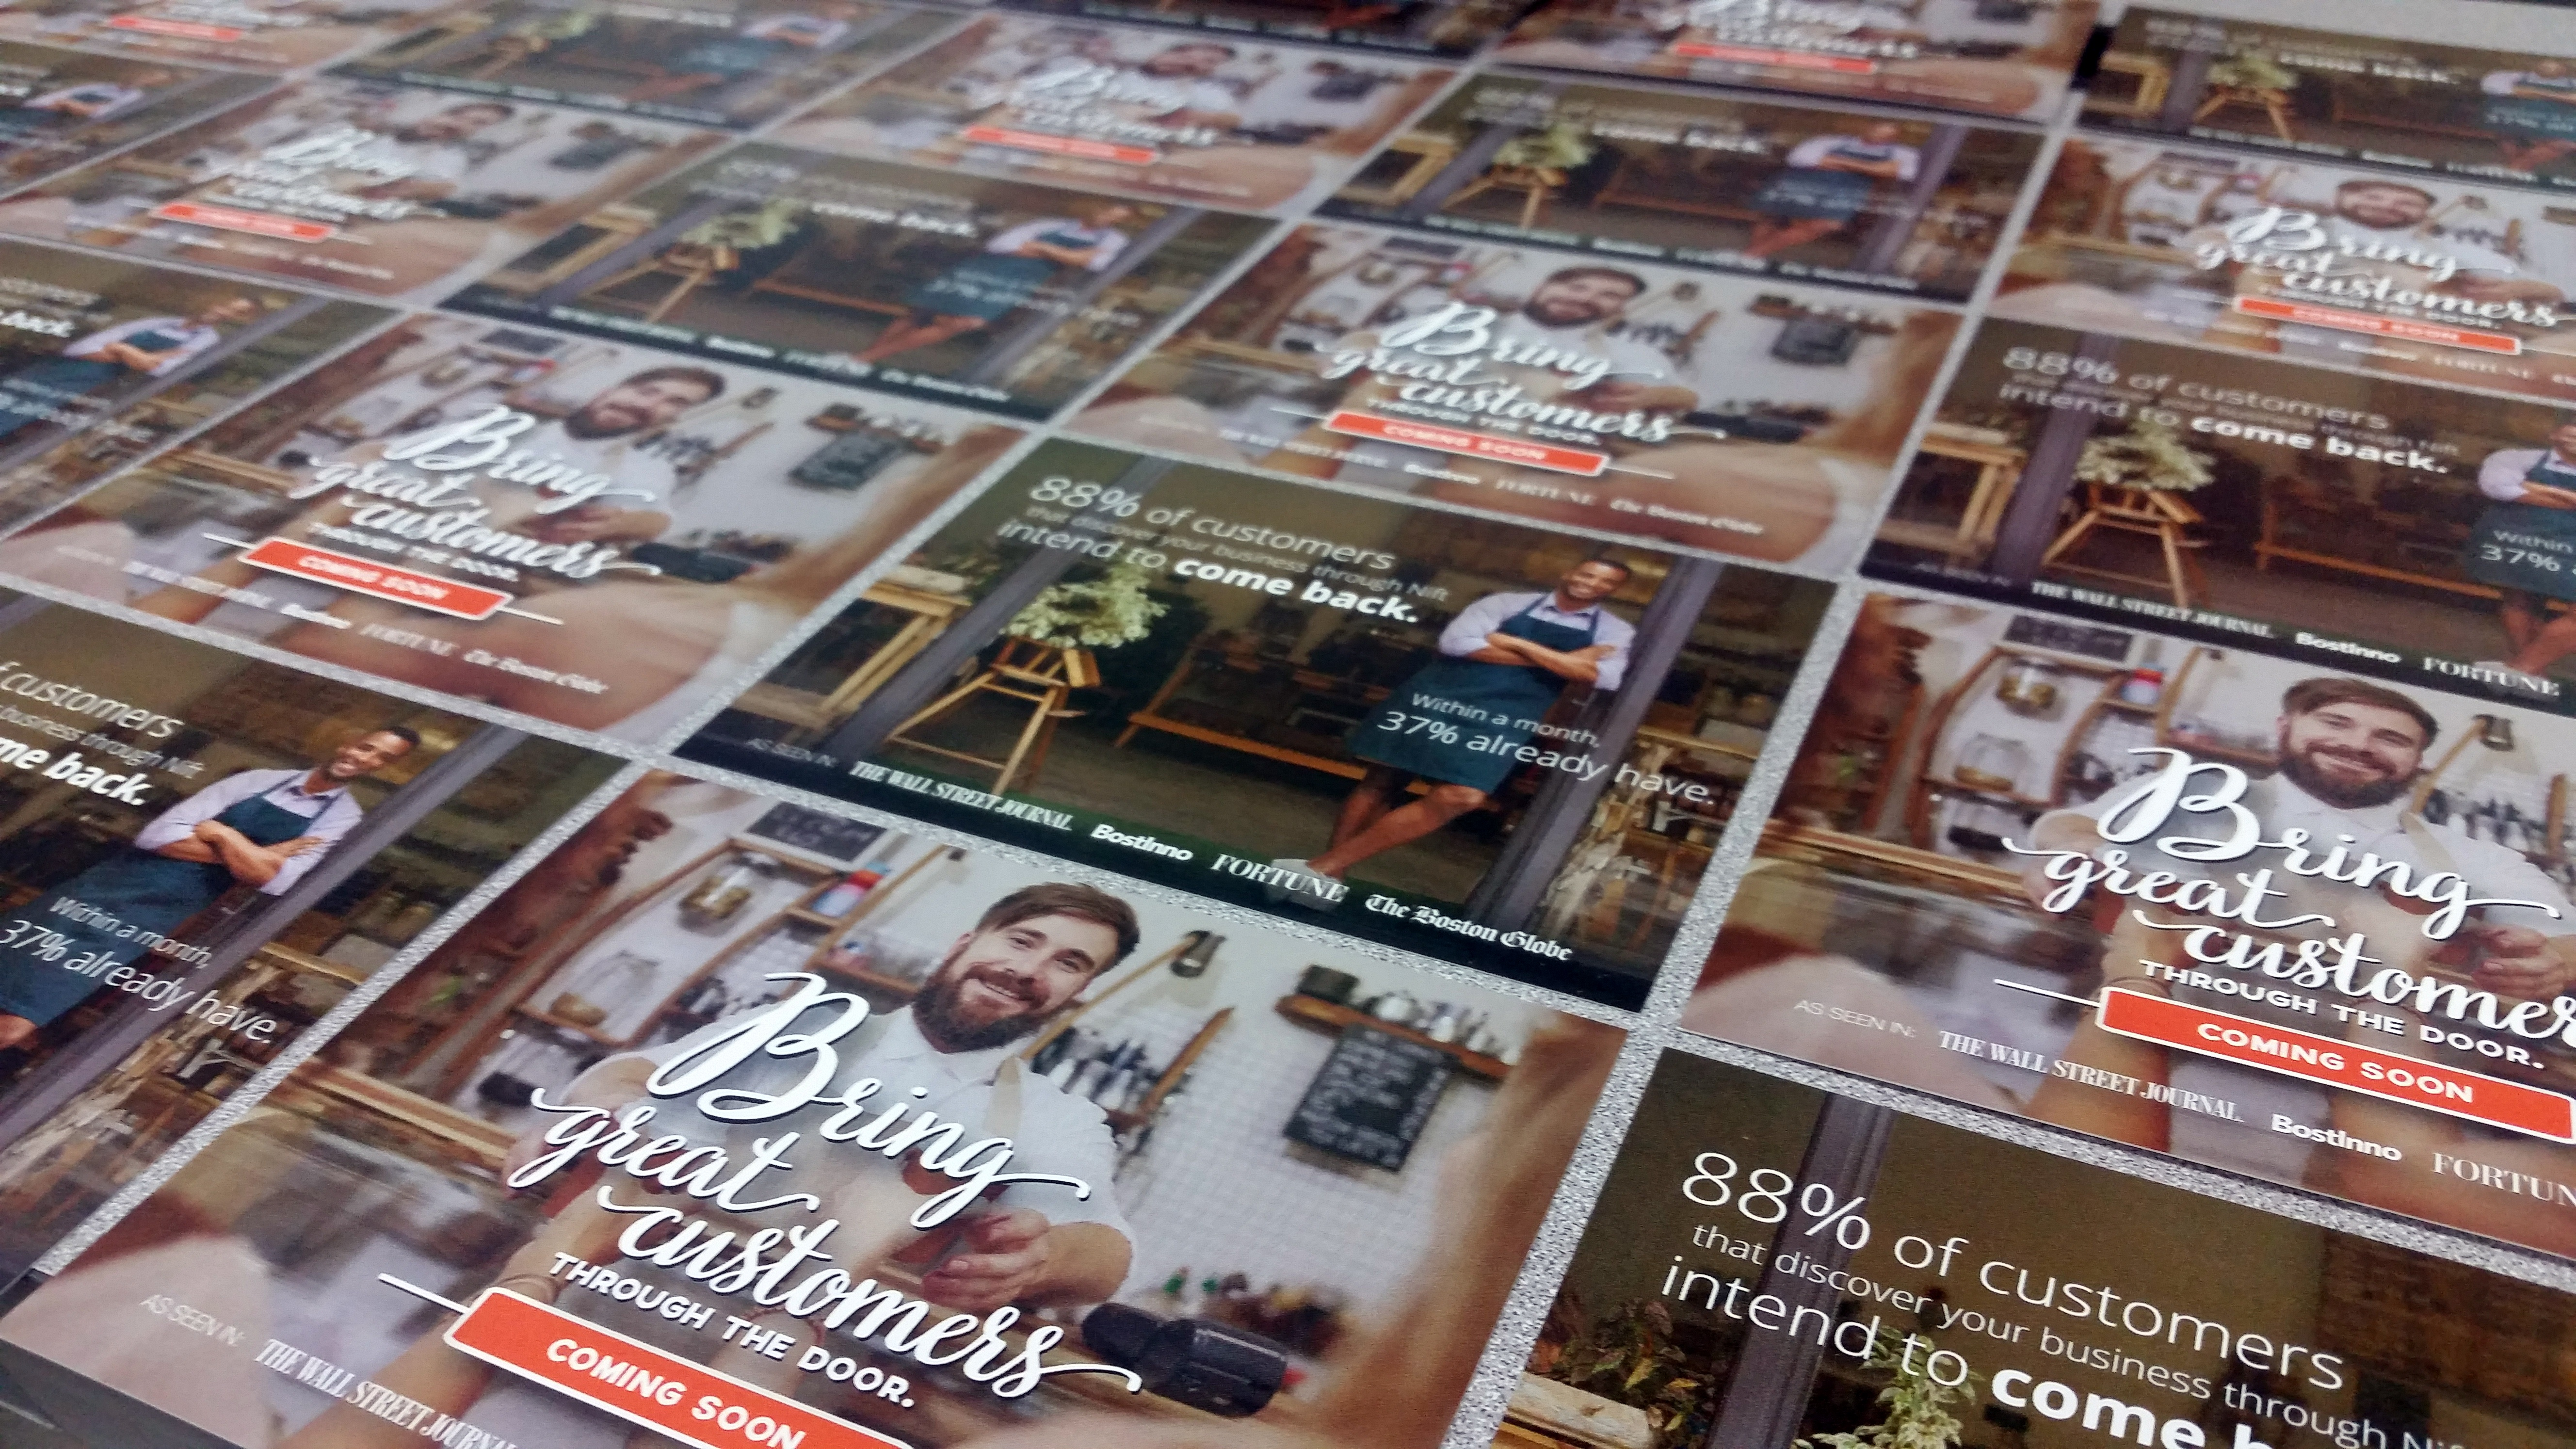 Nift Postcards - that's #WhatsOnPress at TPI Solutions Ink